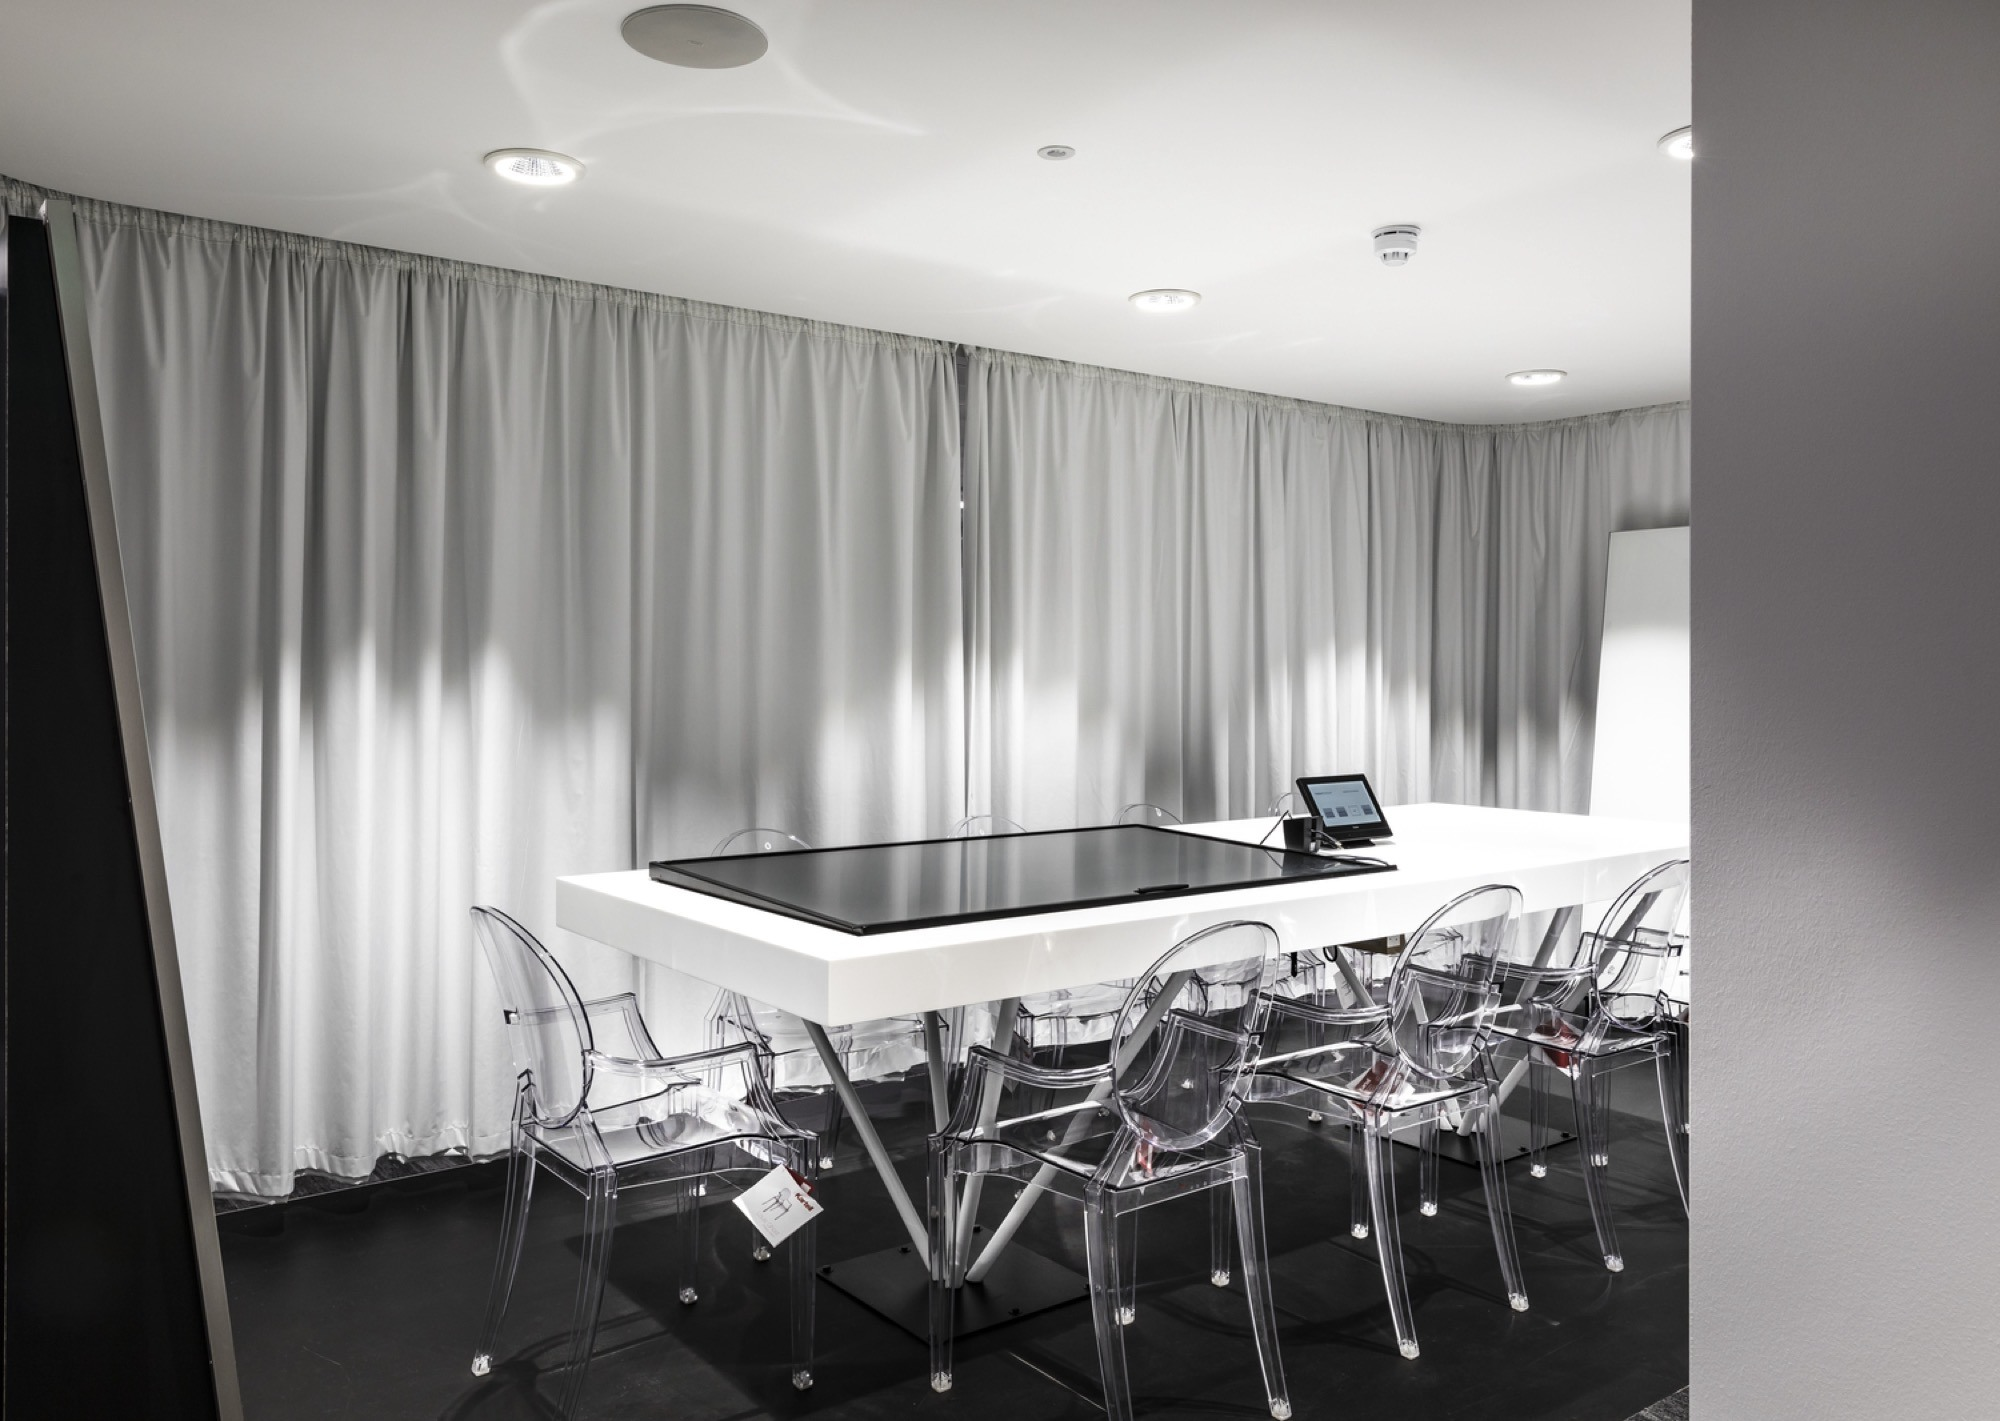 The Hut Group smart meeting room design and build